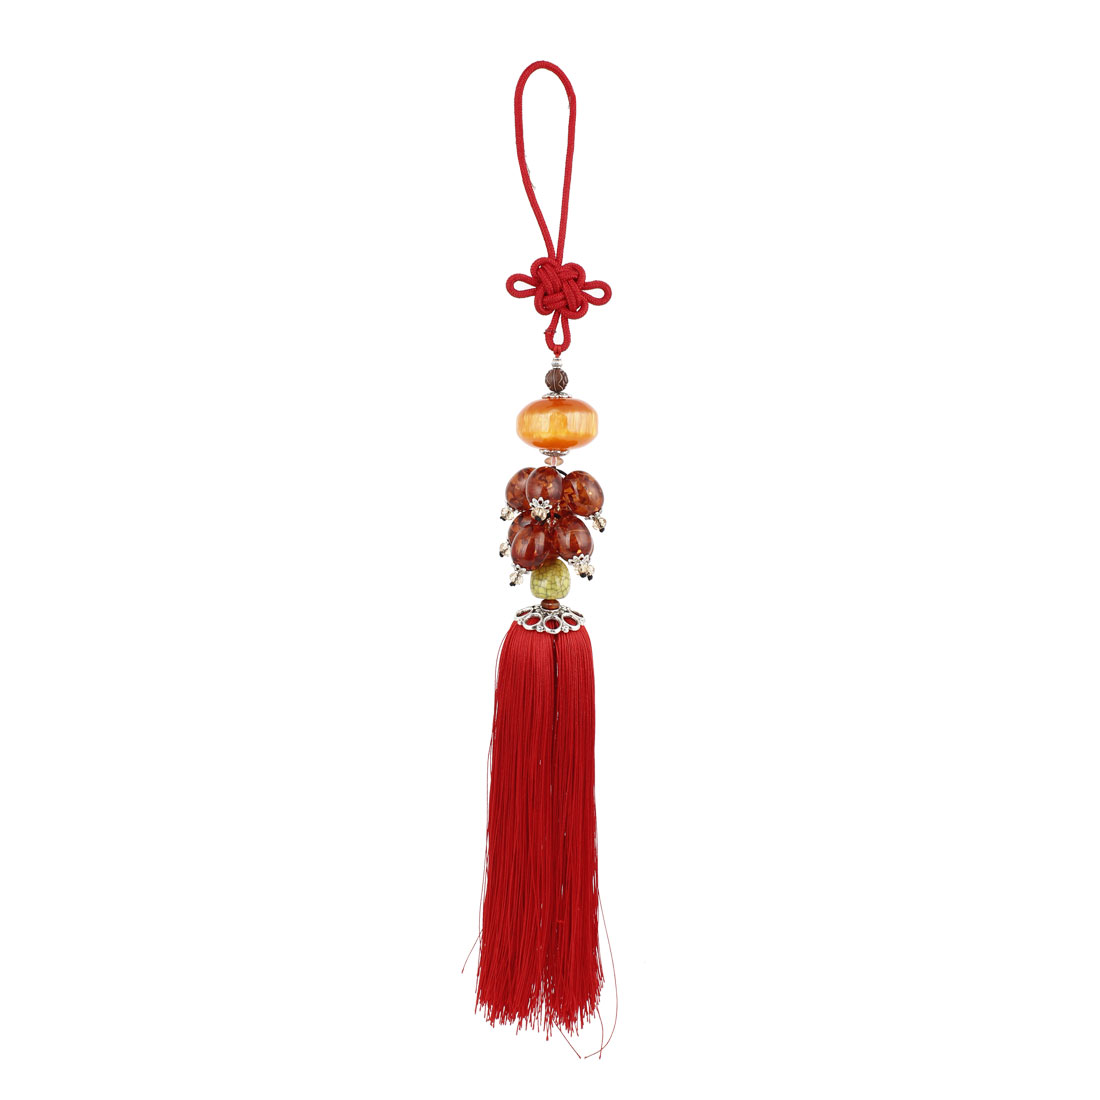 Vehicle Red Nylon Chinese Knot Accent Plastic Beads Pendant Hanging 40cm Long